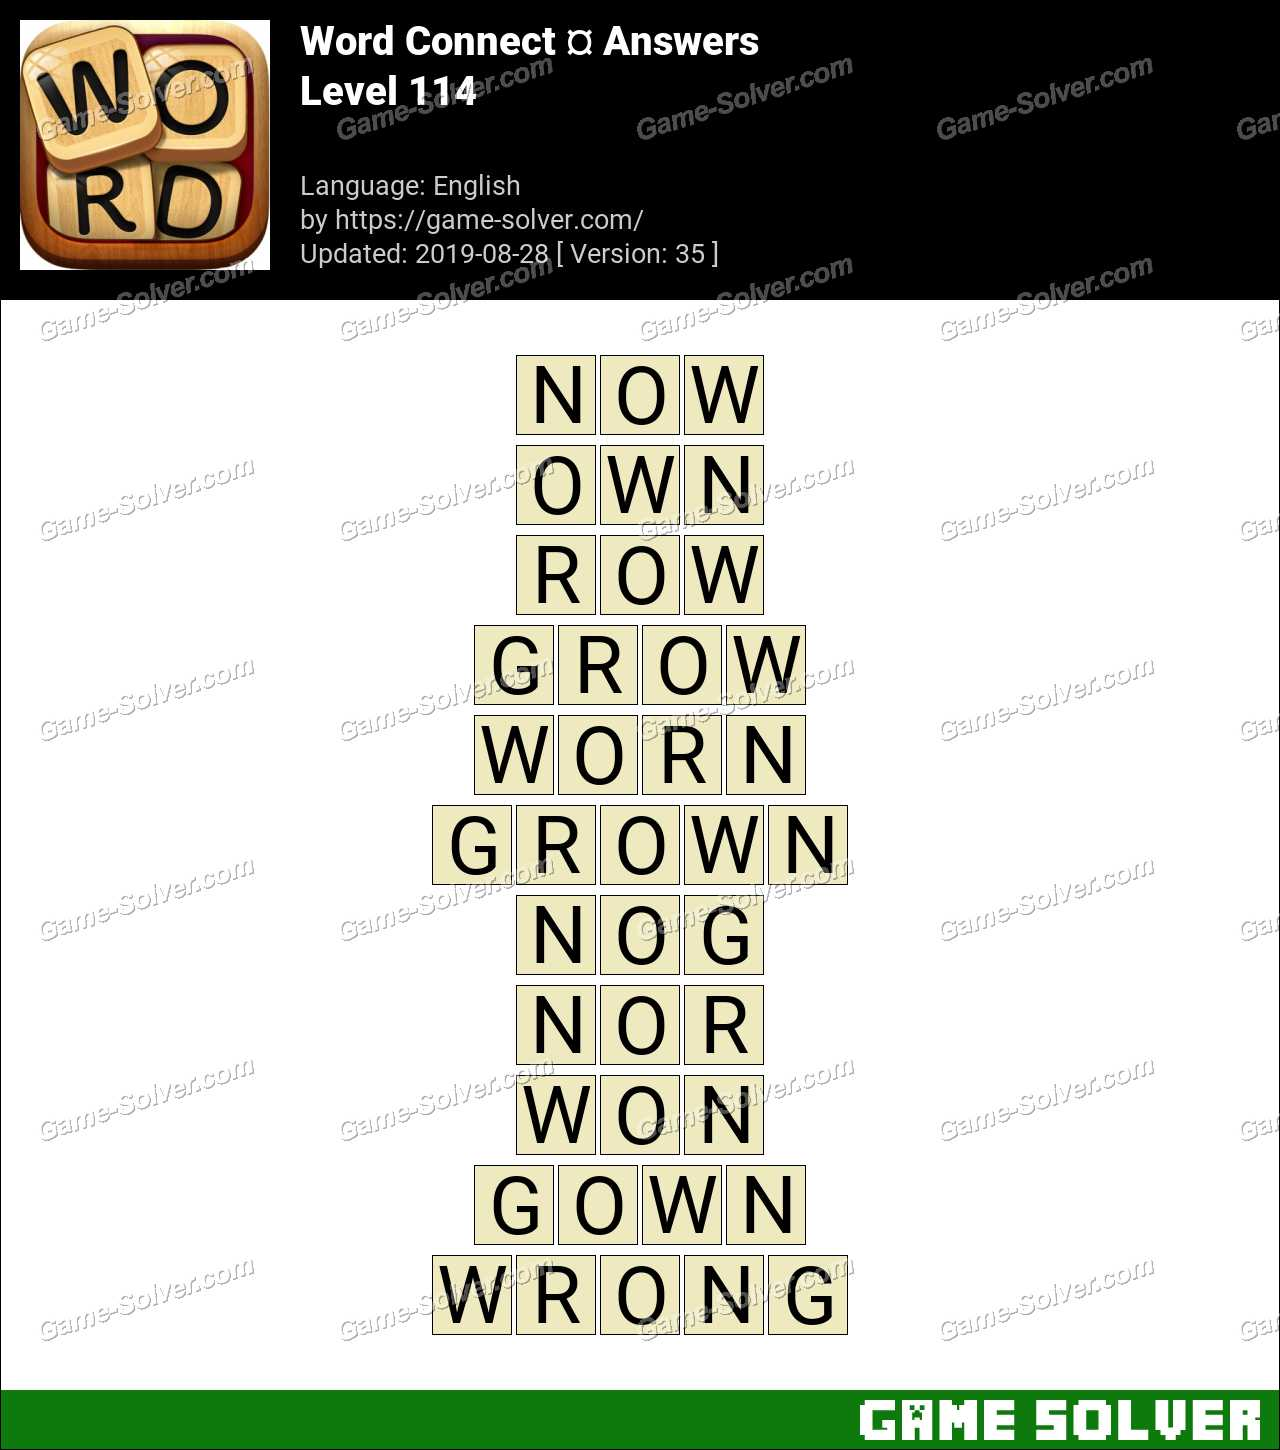 Word Connect Level 114 Answers